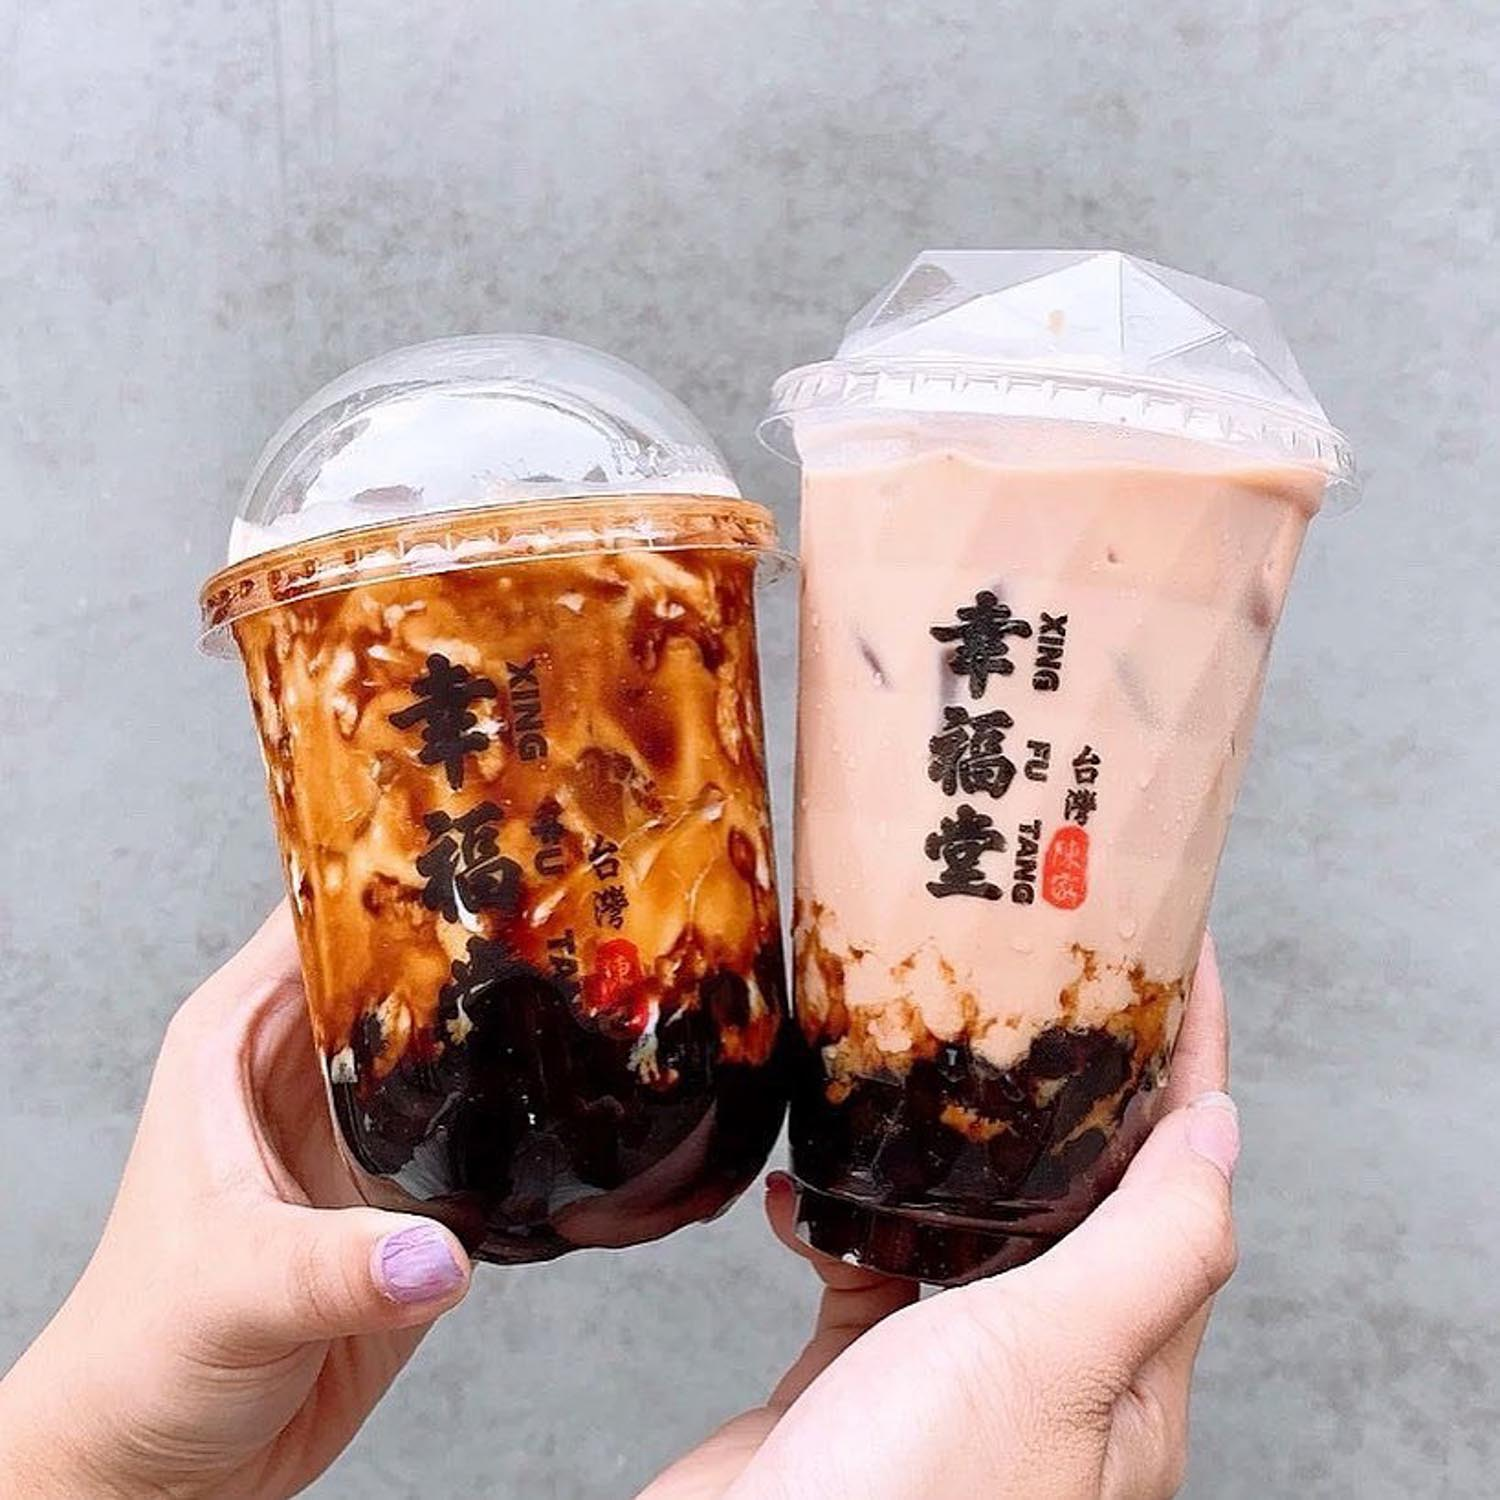 Bubble Tea Shops - Xing Fu Tang